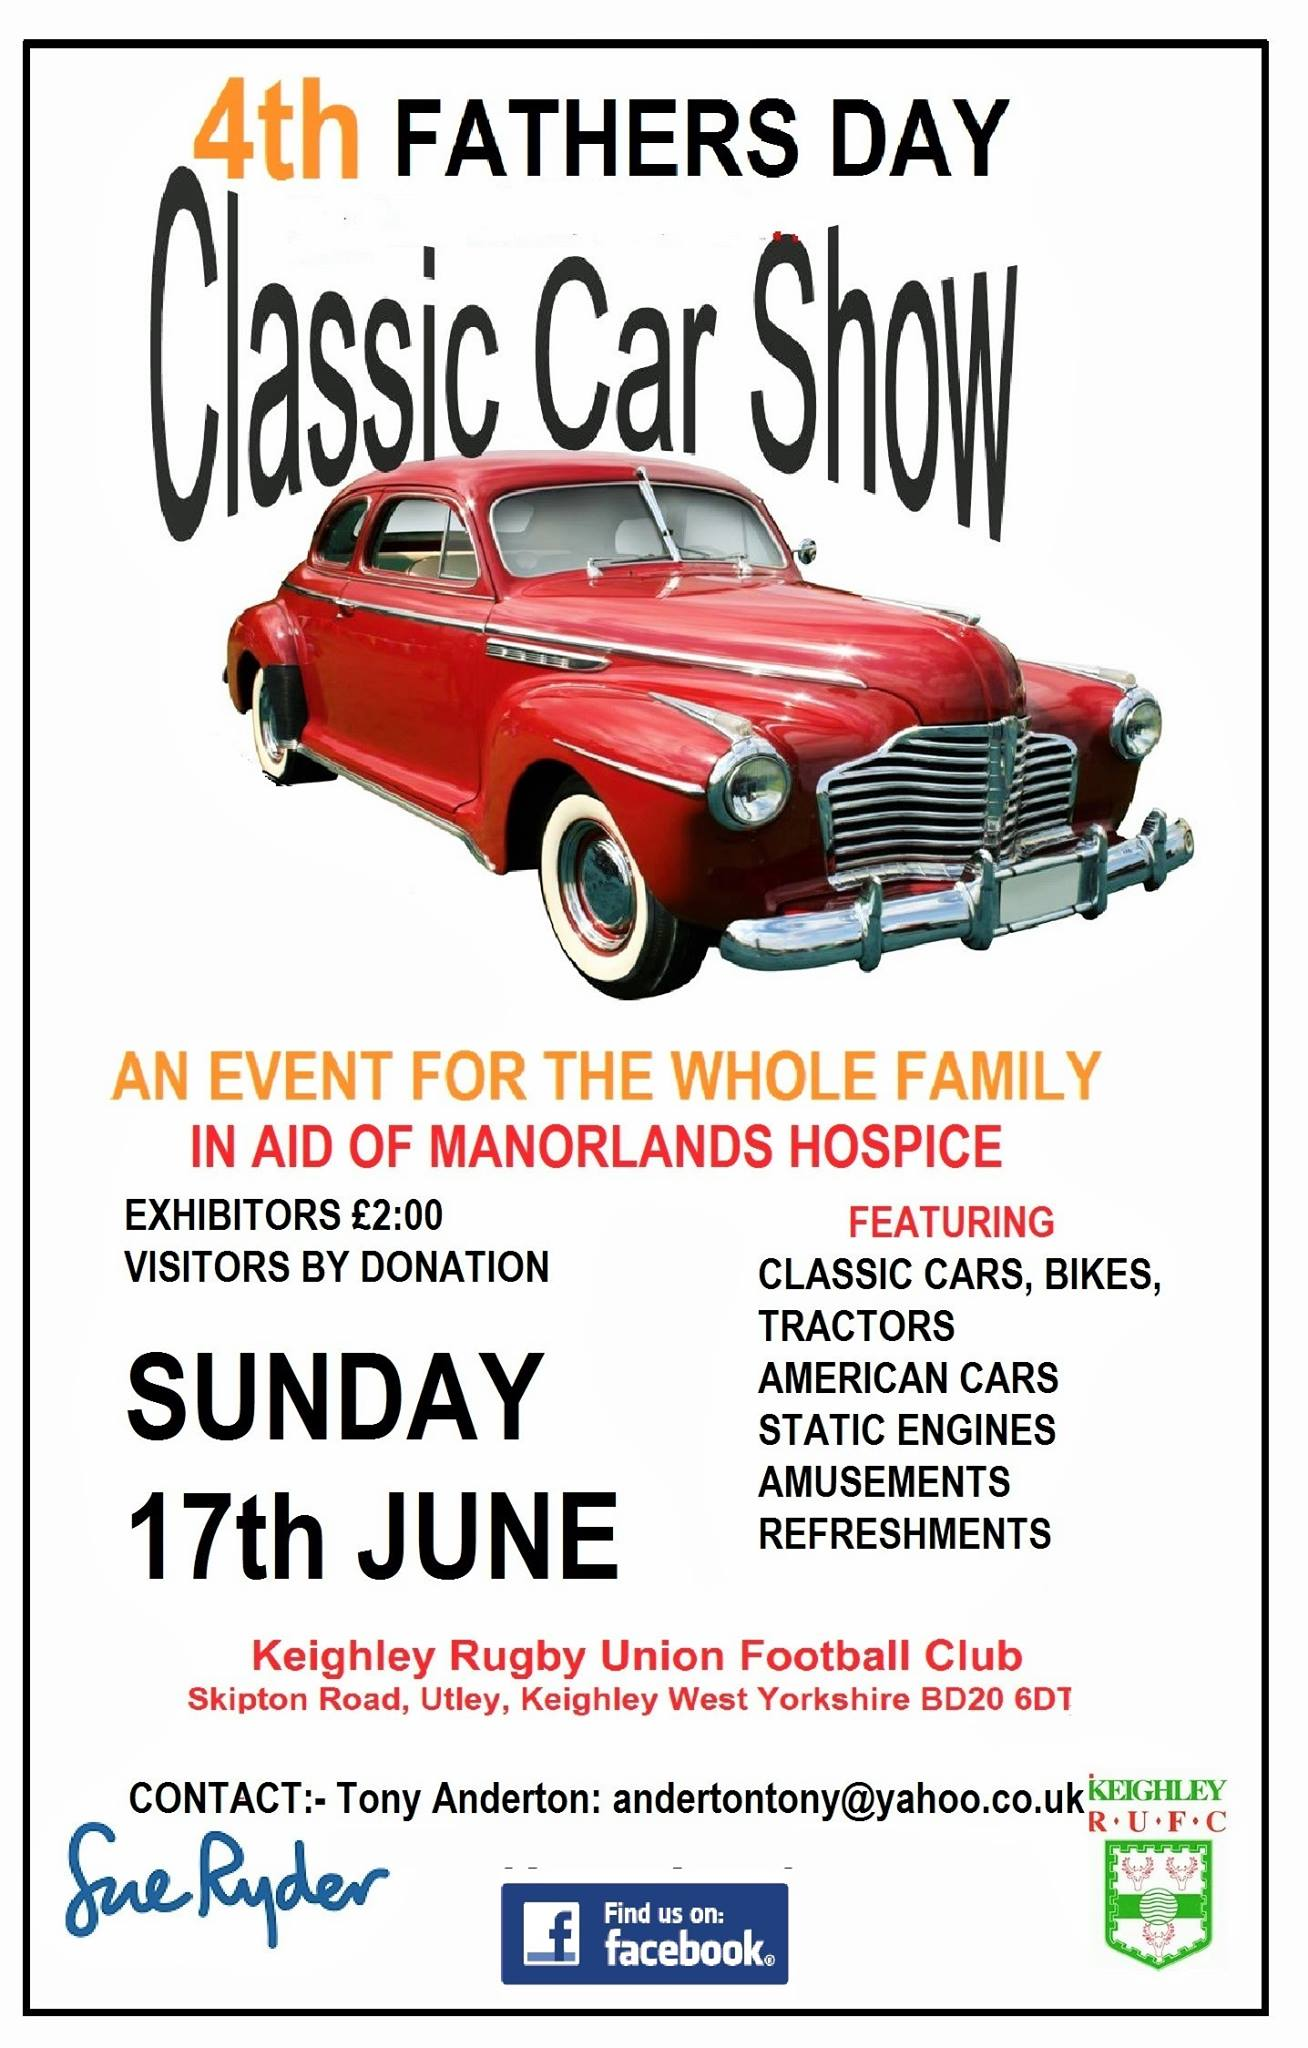 FATHERS DAY CLASSIC GATHERING in aid of SUE RYDER MANORLANDS